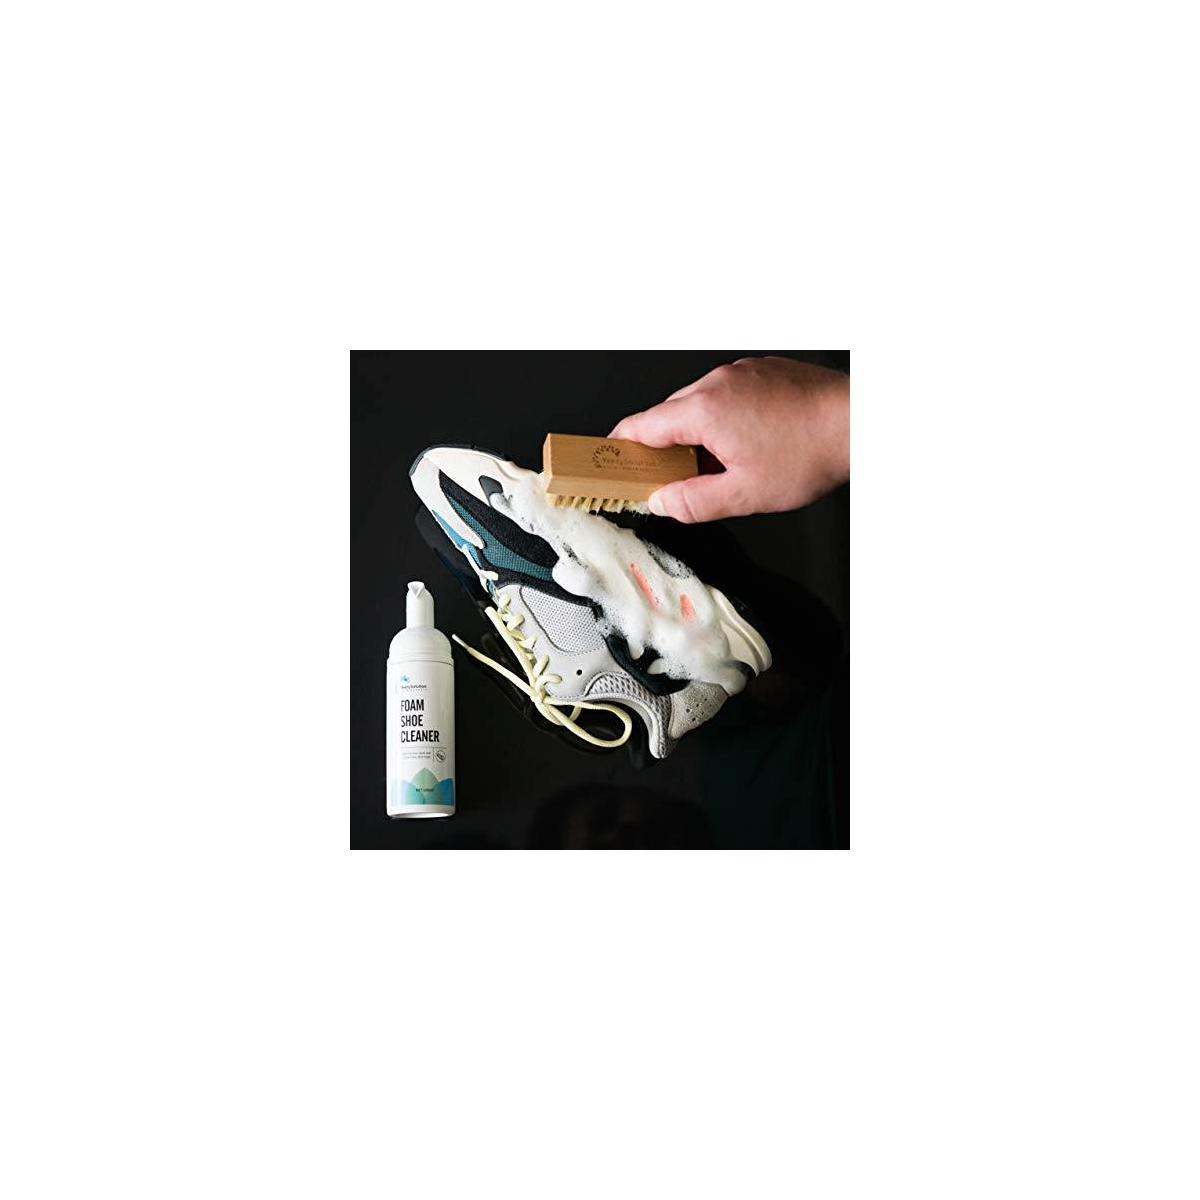 Shoe Cleaner Kit by YeezySolution - Eco-Friendly Ingredients, Water-free Effective Foam Formula, Water Repellent Spray, Premium Soft-Brush